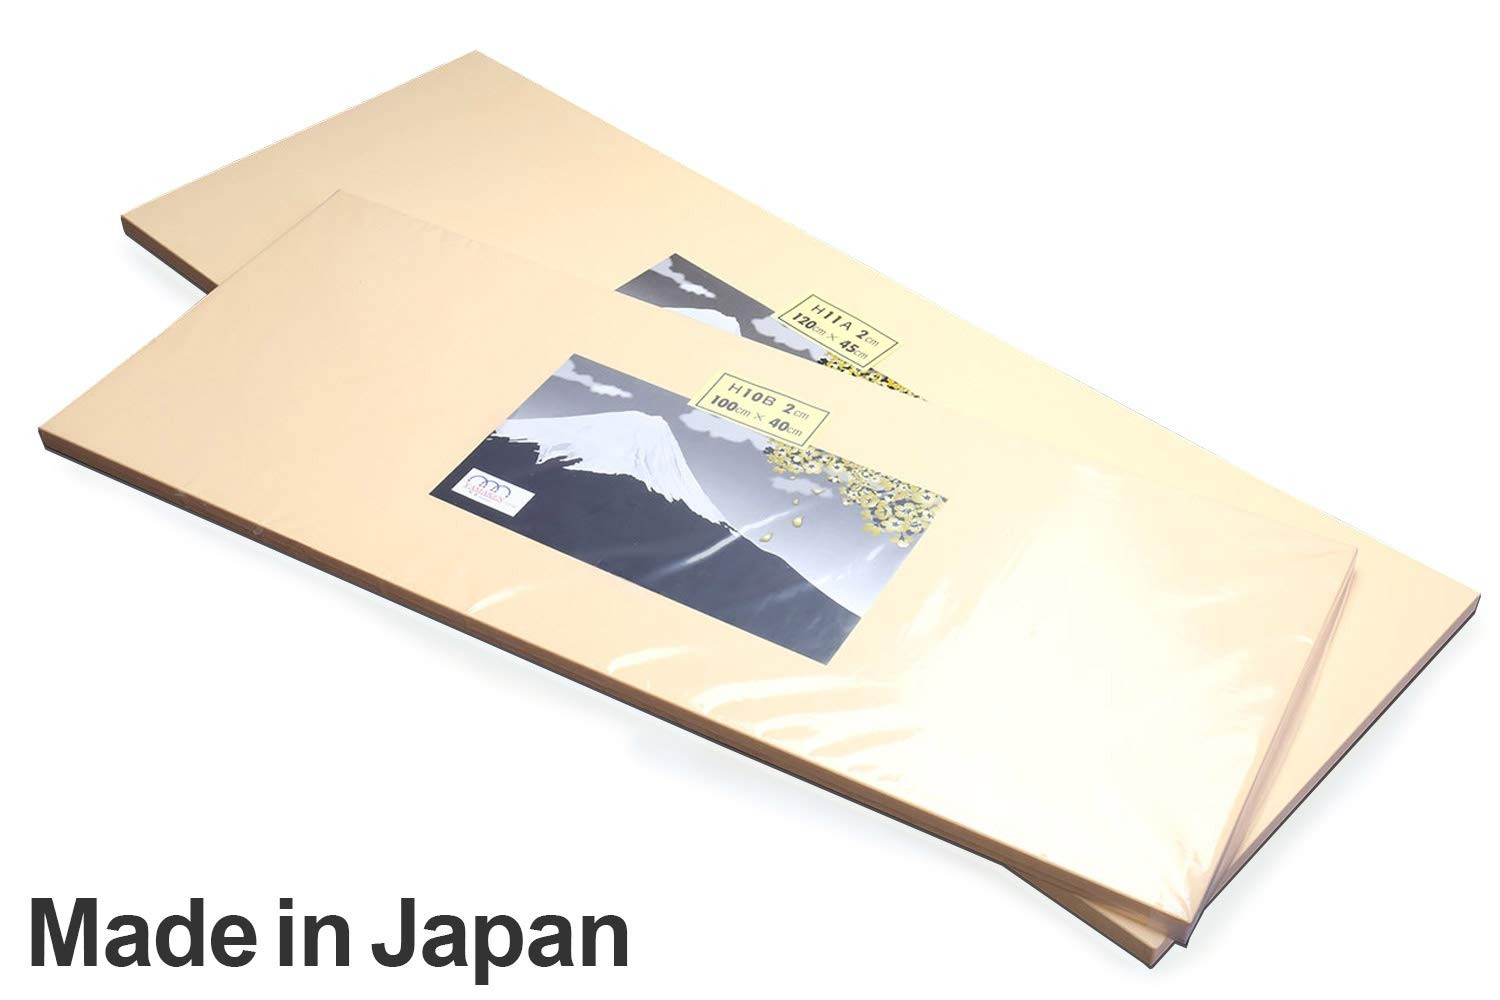 Yoshihiro Hi-soft High Performance Professional Grade Cutting Board Japanese Sashimi Chef's Tool: XX-Large Made in Japan by Yoshihiro